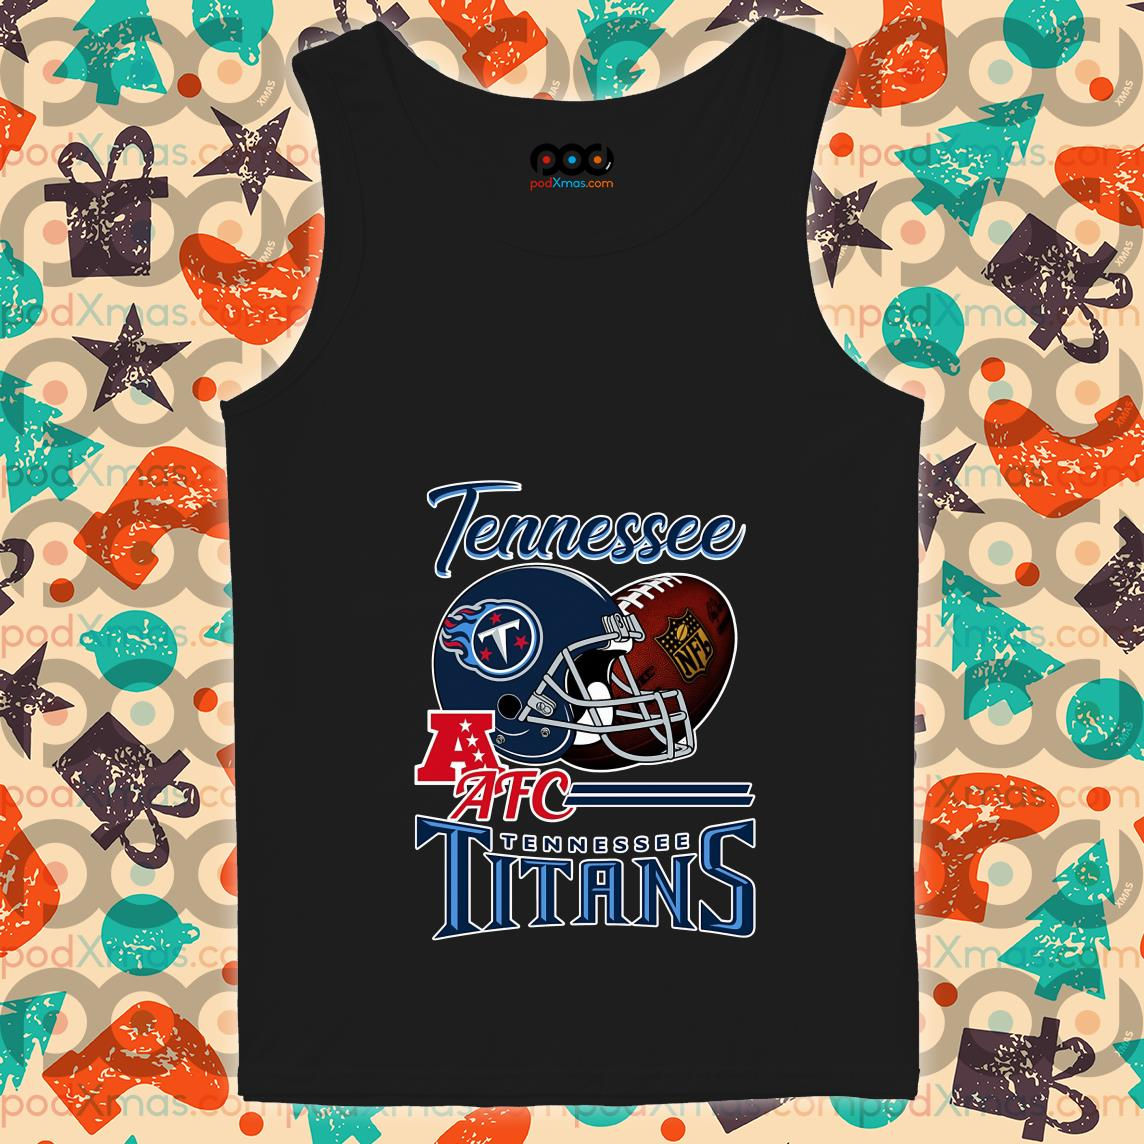 Tennessee AFC Tennessee Titans tank top